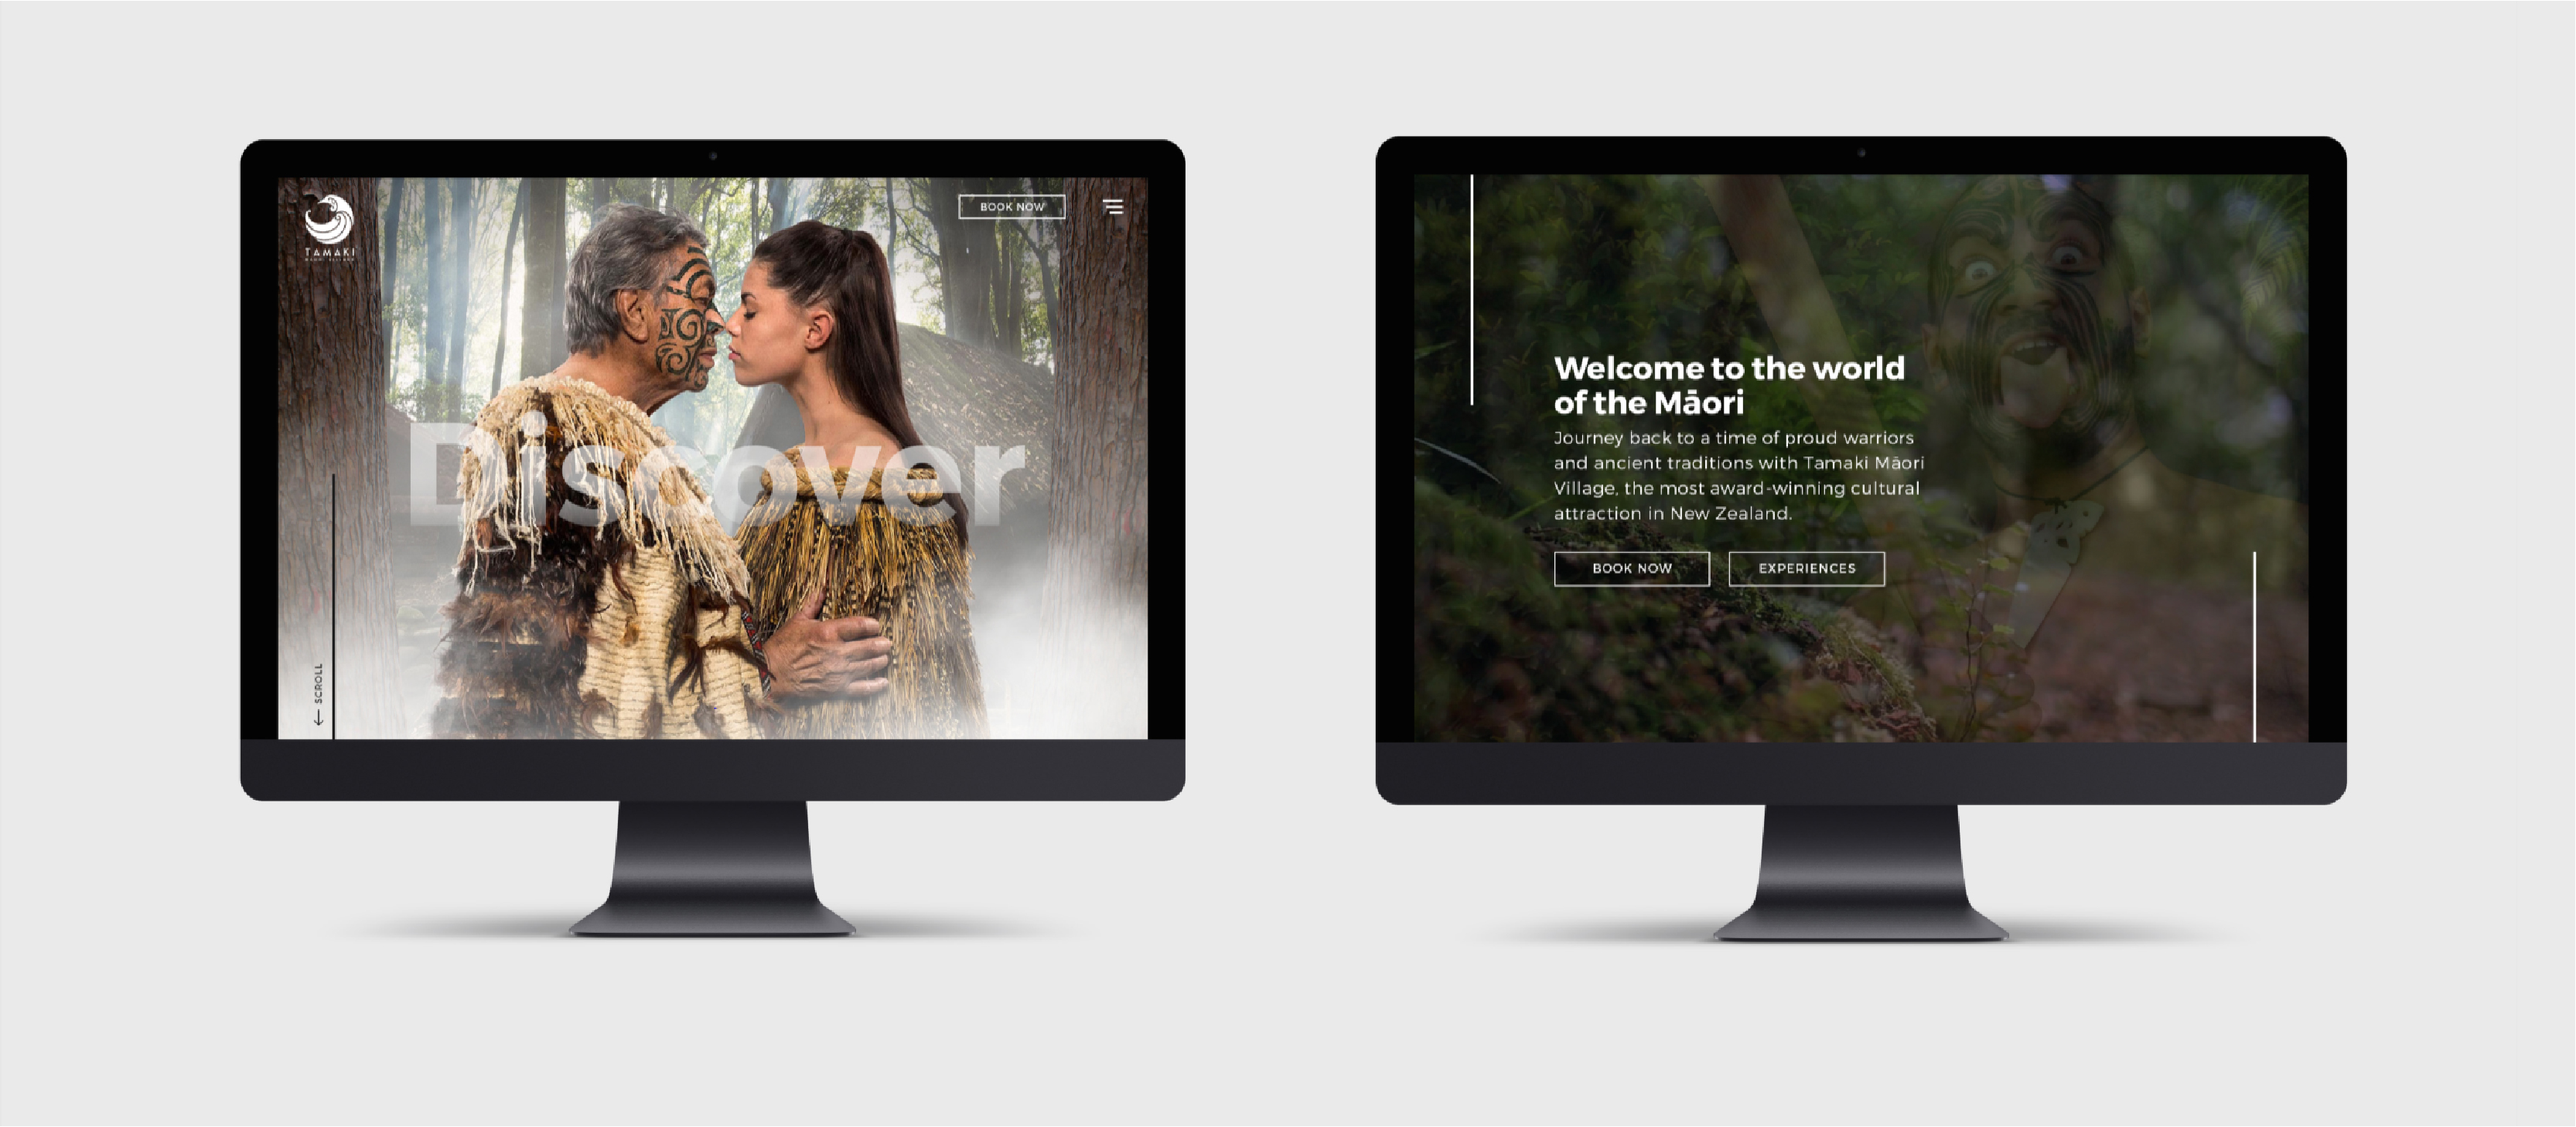 Tamaki Maori Village Website Redevelopment by Maverick Digital